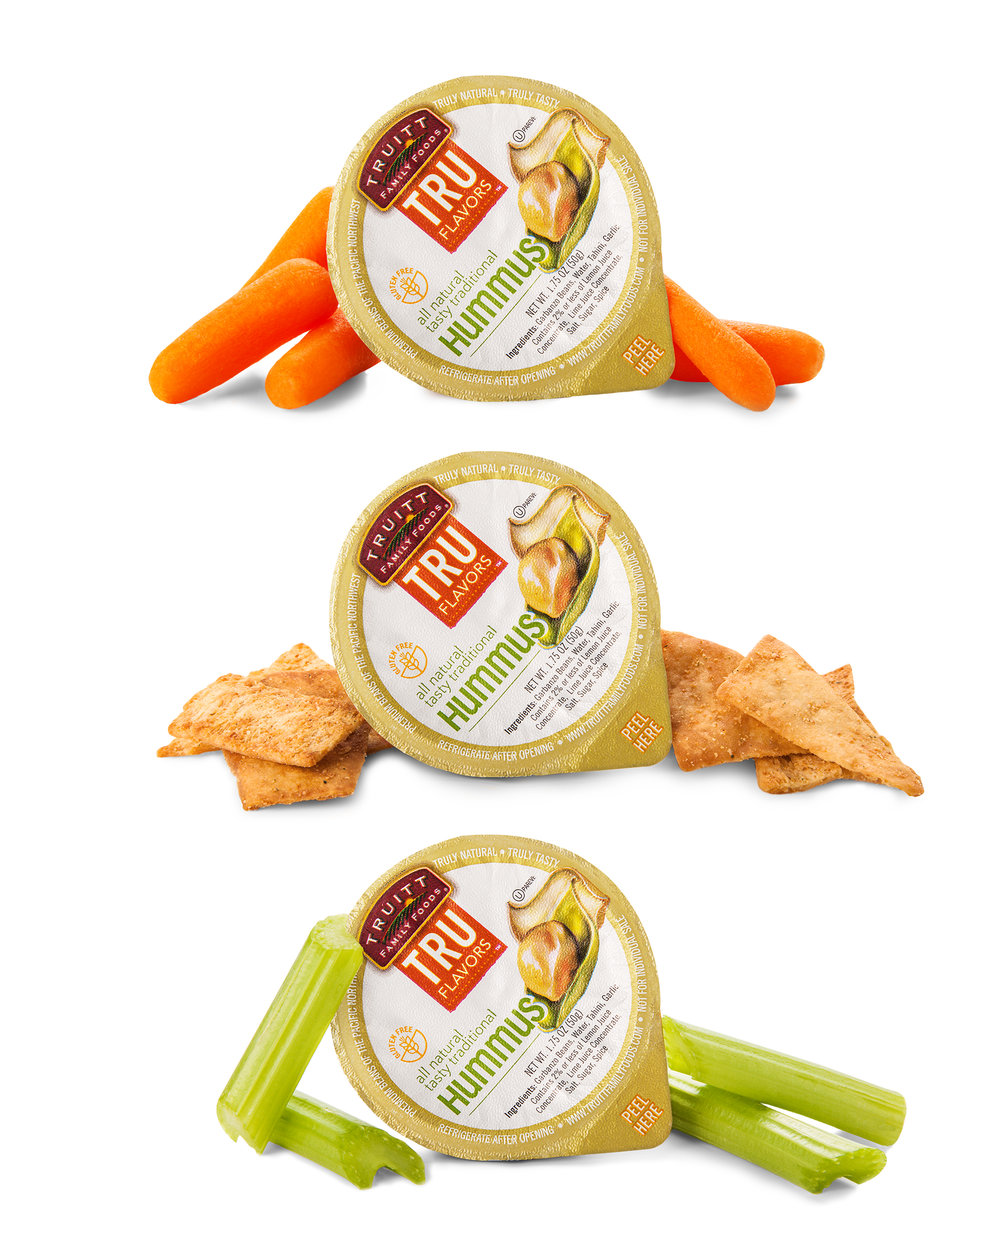 Truitt hummus food style photography spencer wallace photo.jpg